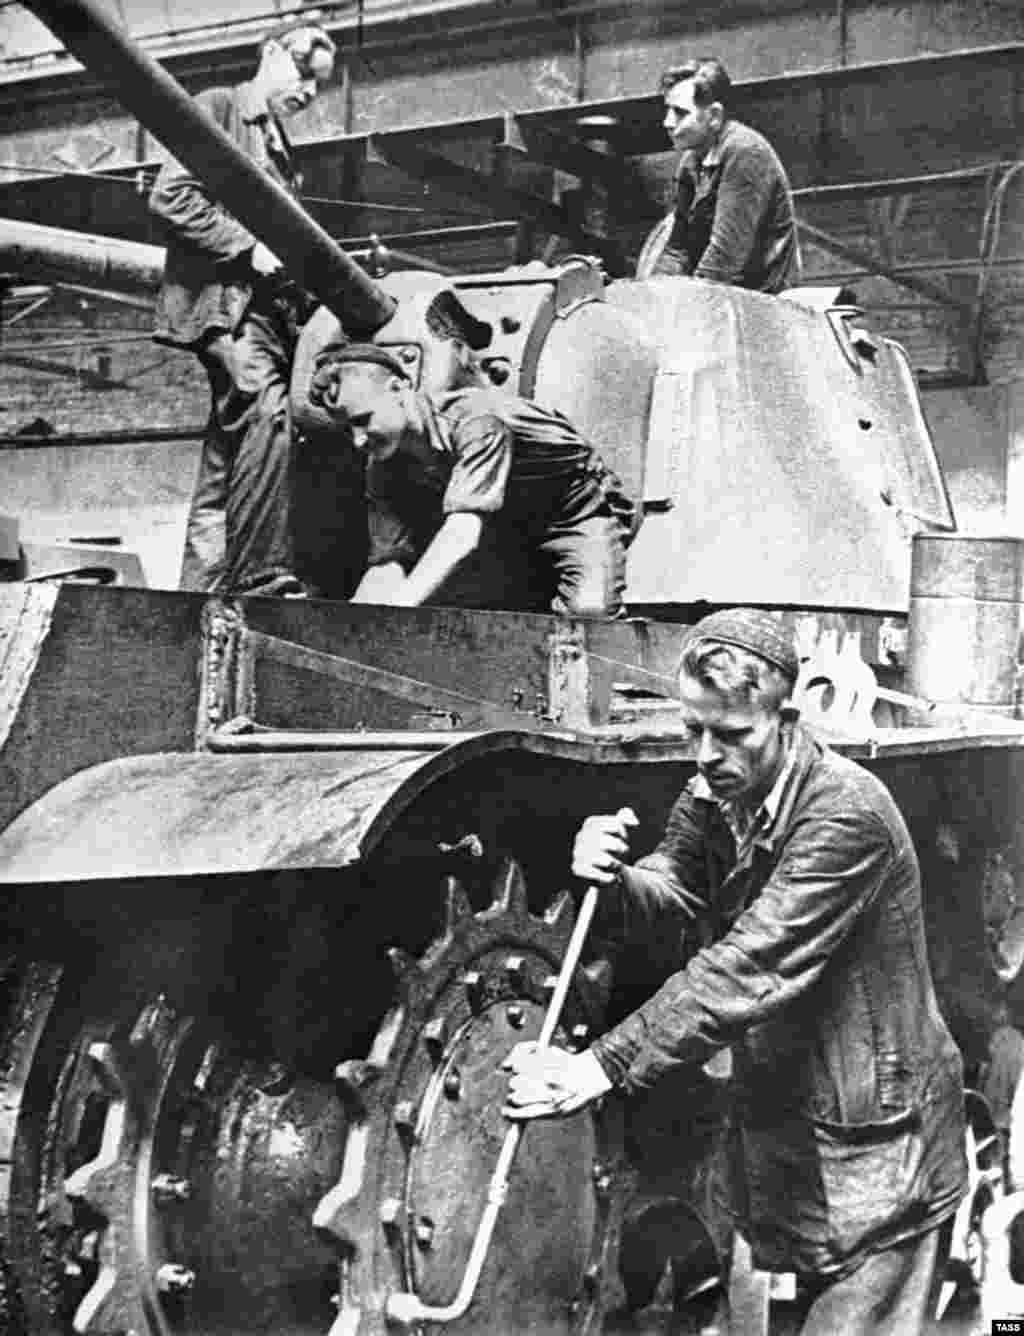 Workers assemble a T-34 tank in a workshop of the Kirov tank-manufacturing plant in Chelyabinsk, U.S.S.R., 1943.